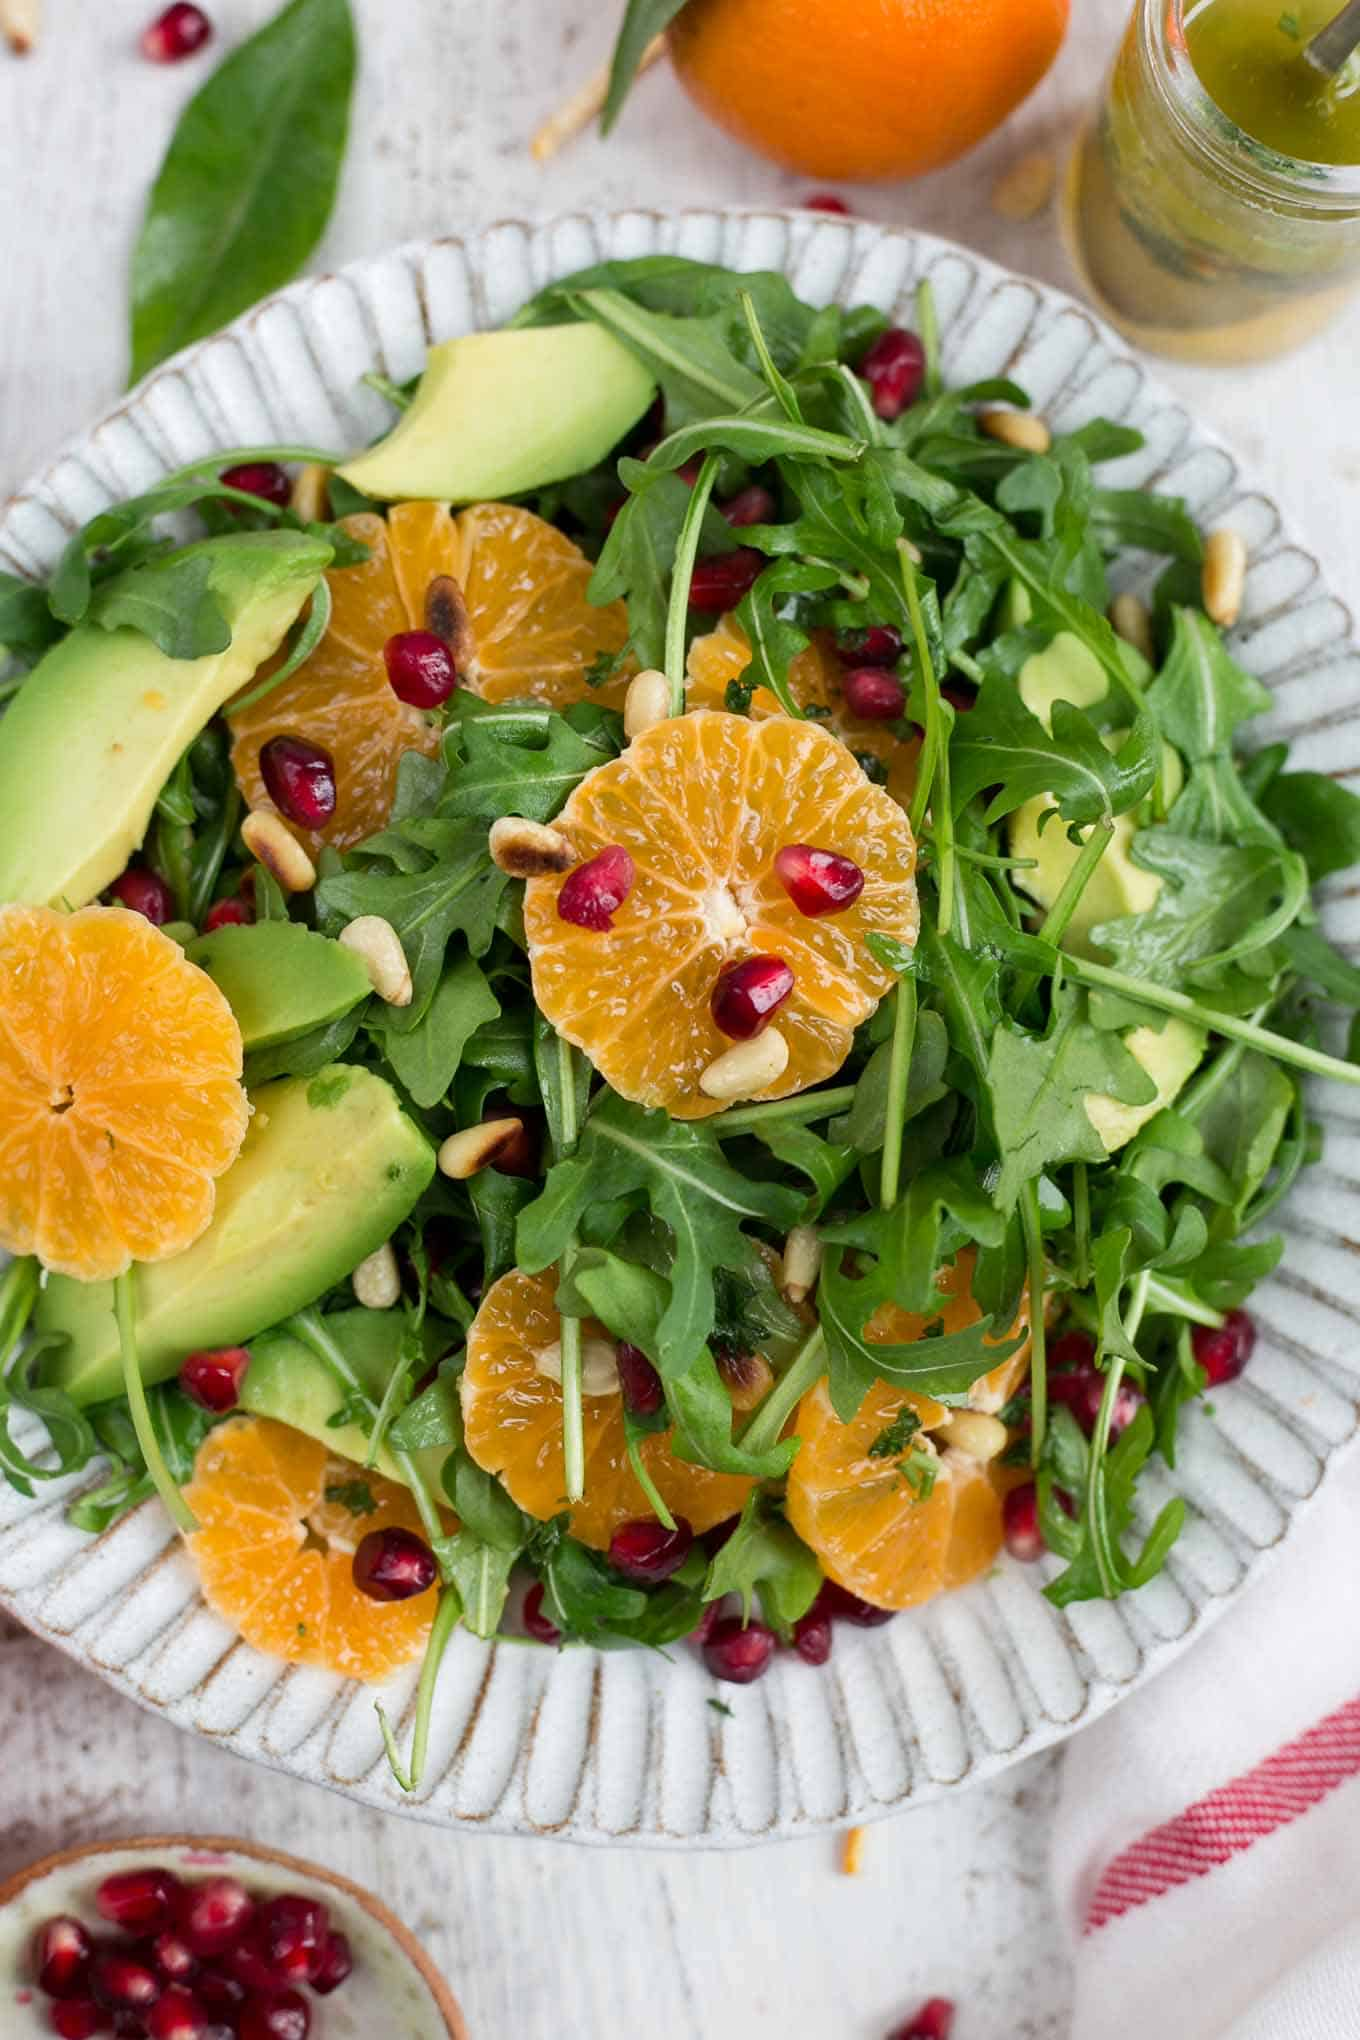 Super- clean, avocado and clementine salad with juicy pomegranate #vegan #dairyfree #avocado | via @annabanana.co